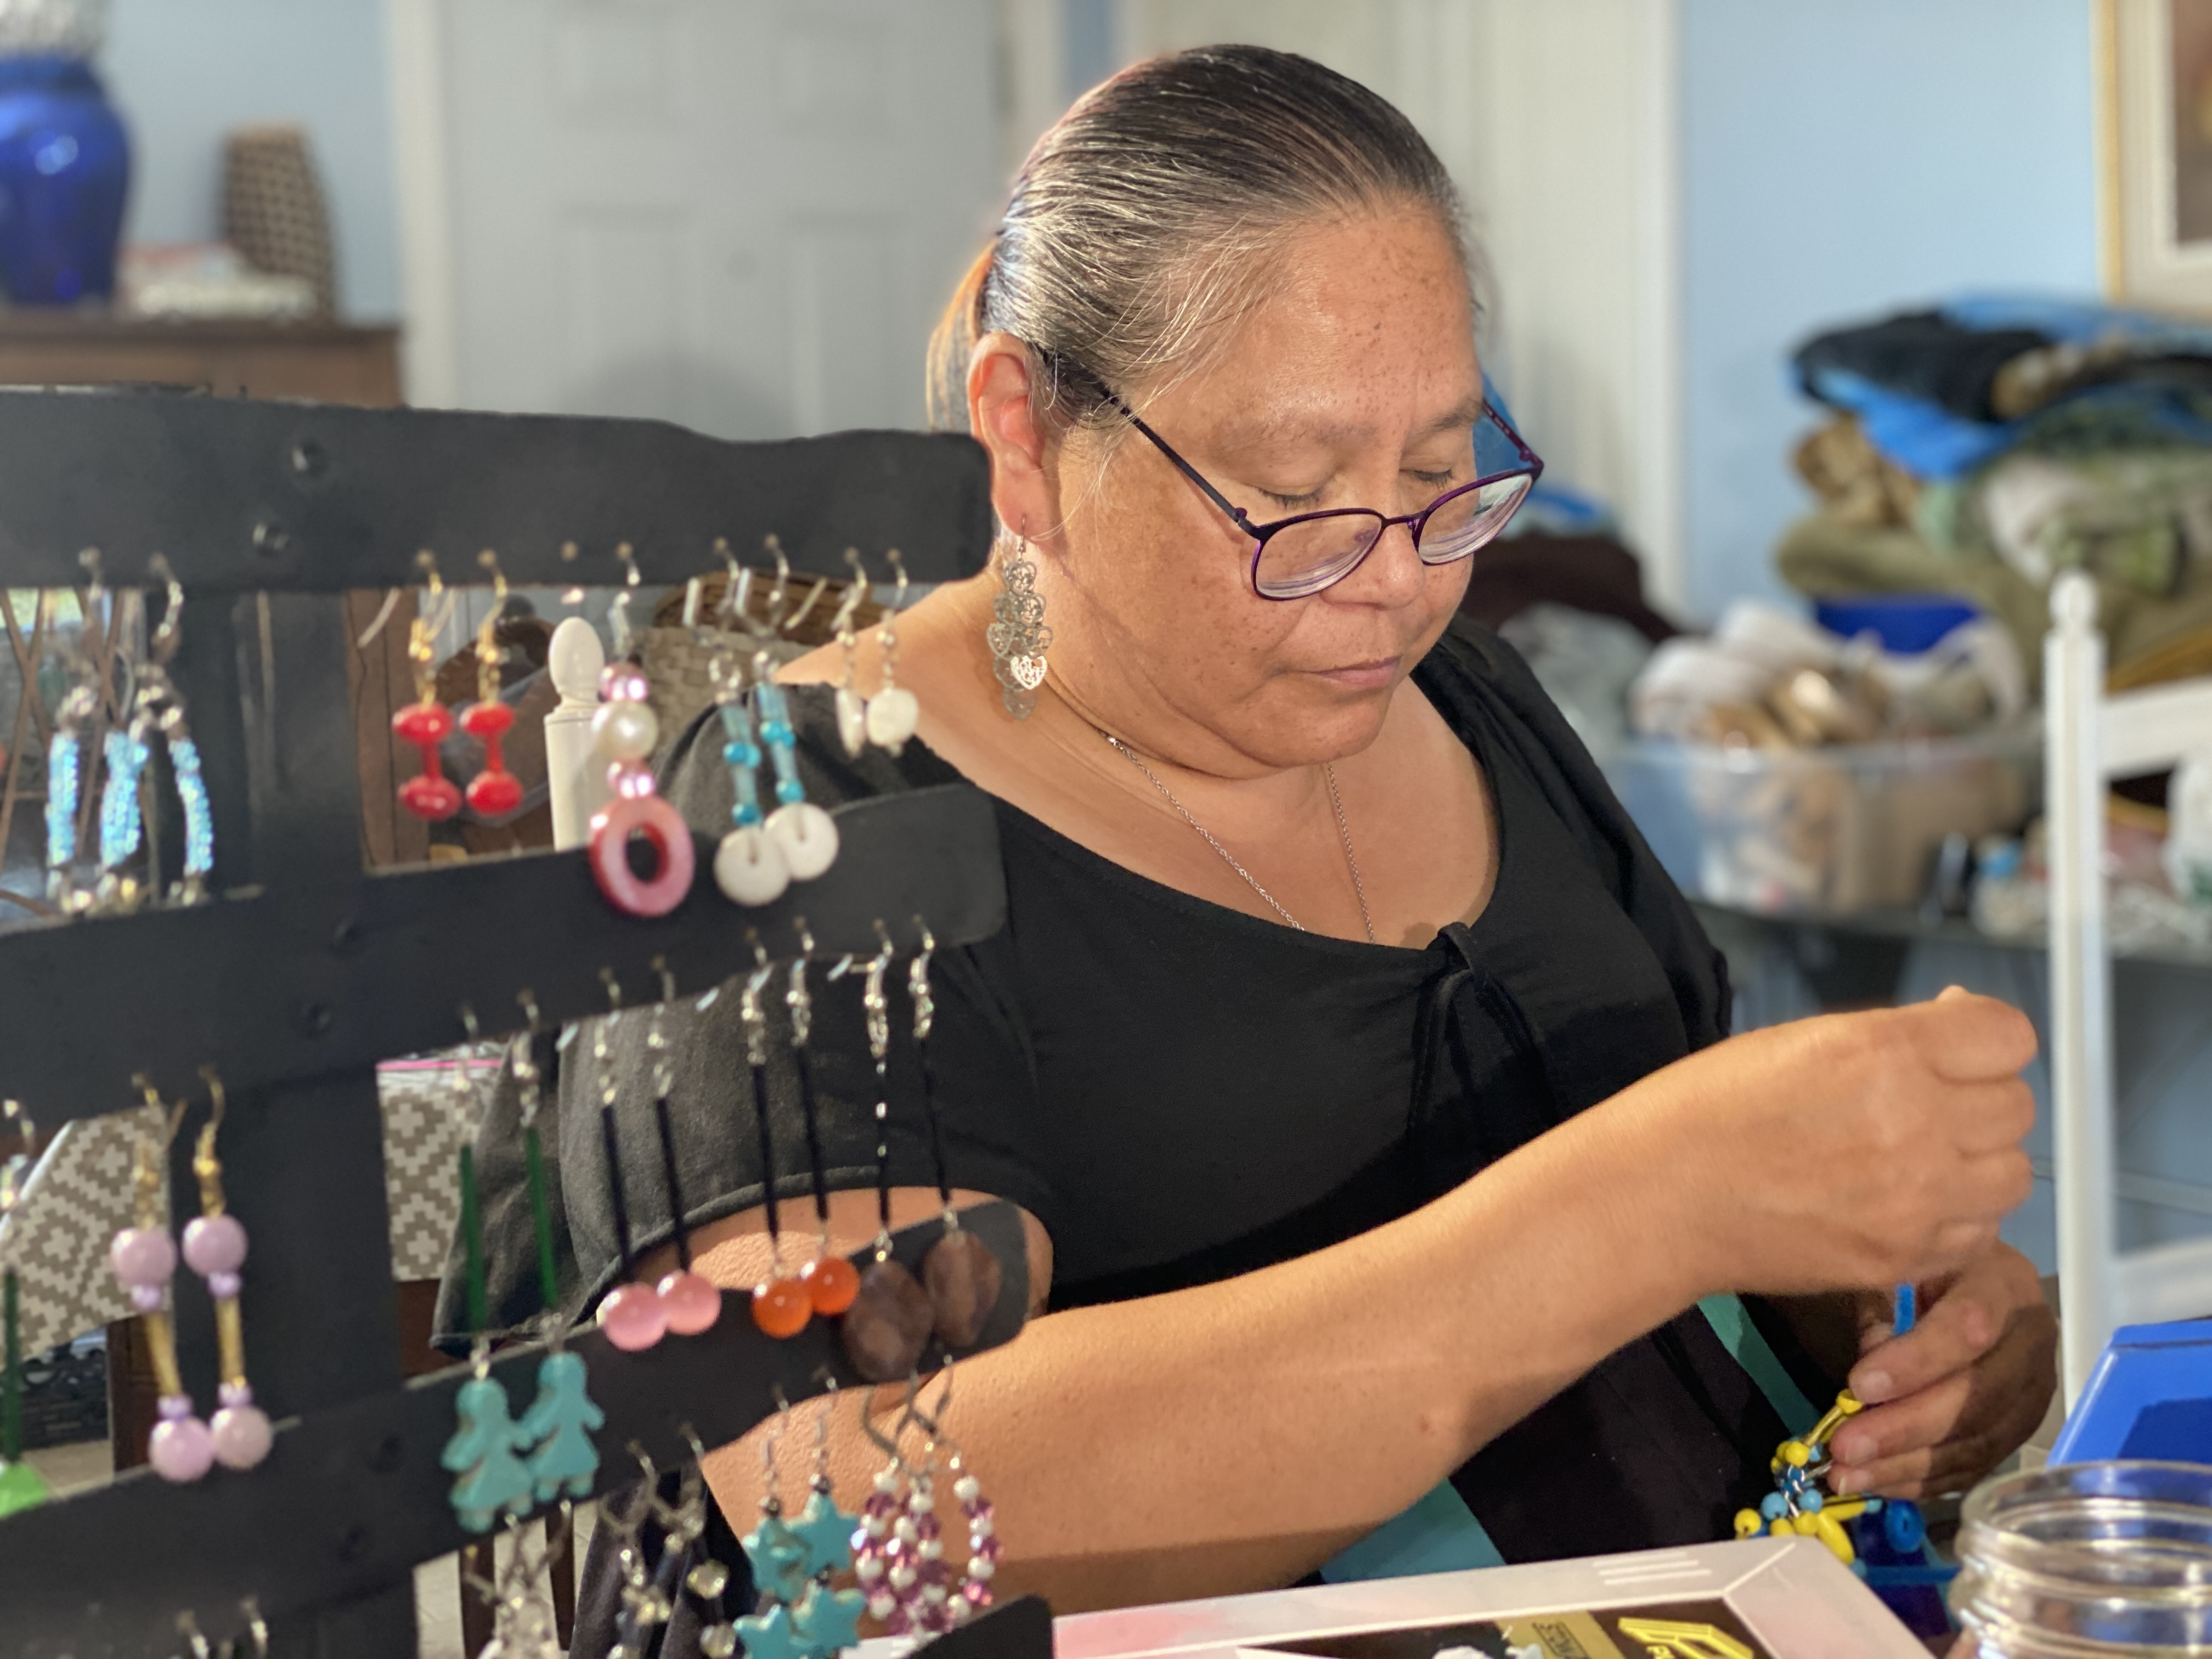 For Patsy Gavin, shown making jewelry at her home on Lennox Island, talking about her school days is anything but nostalgic. She recalls years of fear and abuse. (Kirk Pennell/CBC)